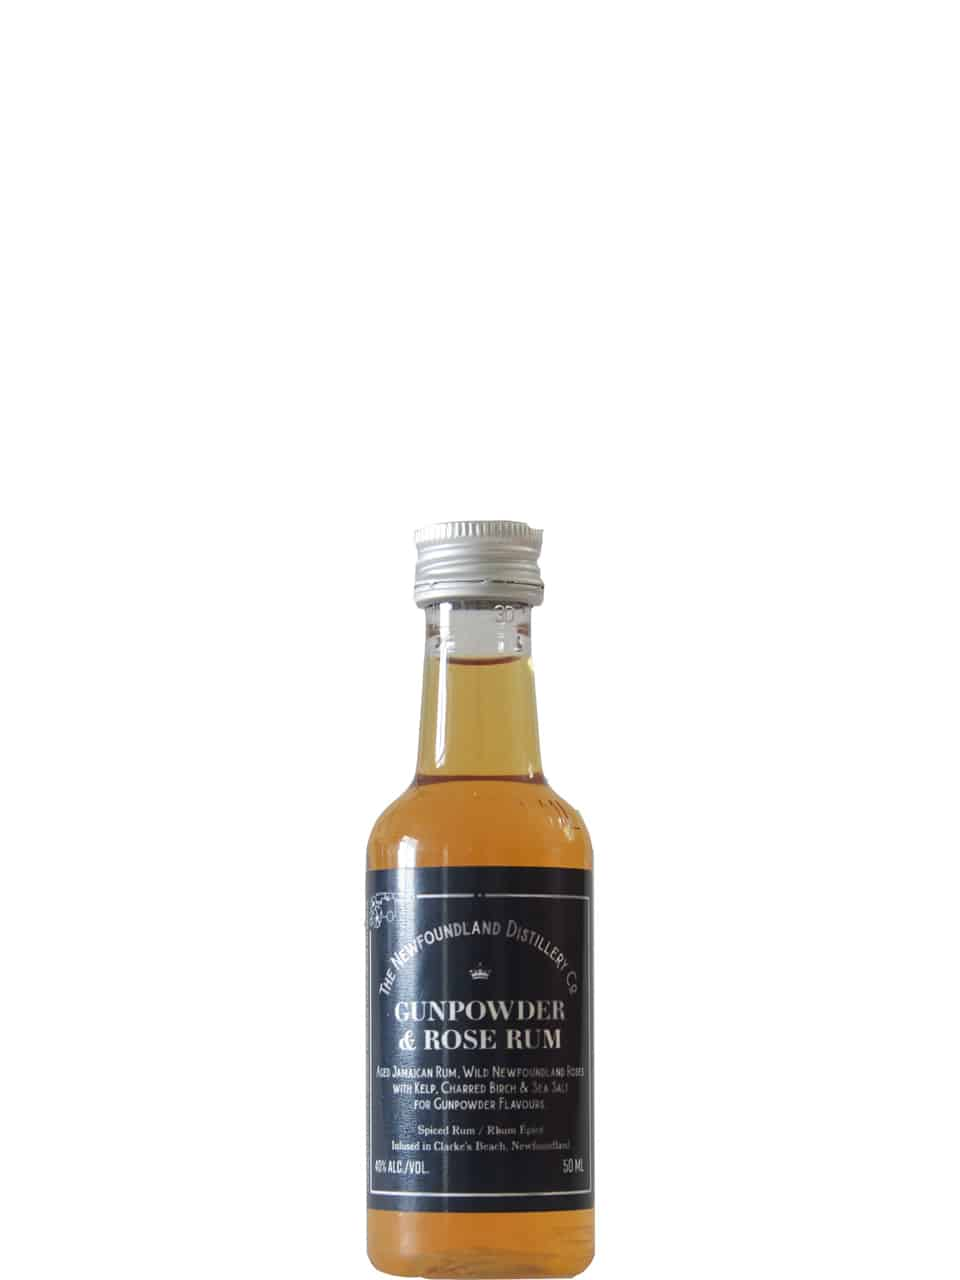 The Newfoundland Distillery Co Gunpowder&Rose Rum